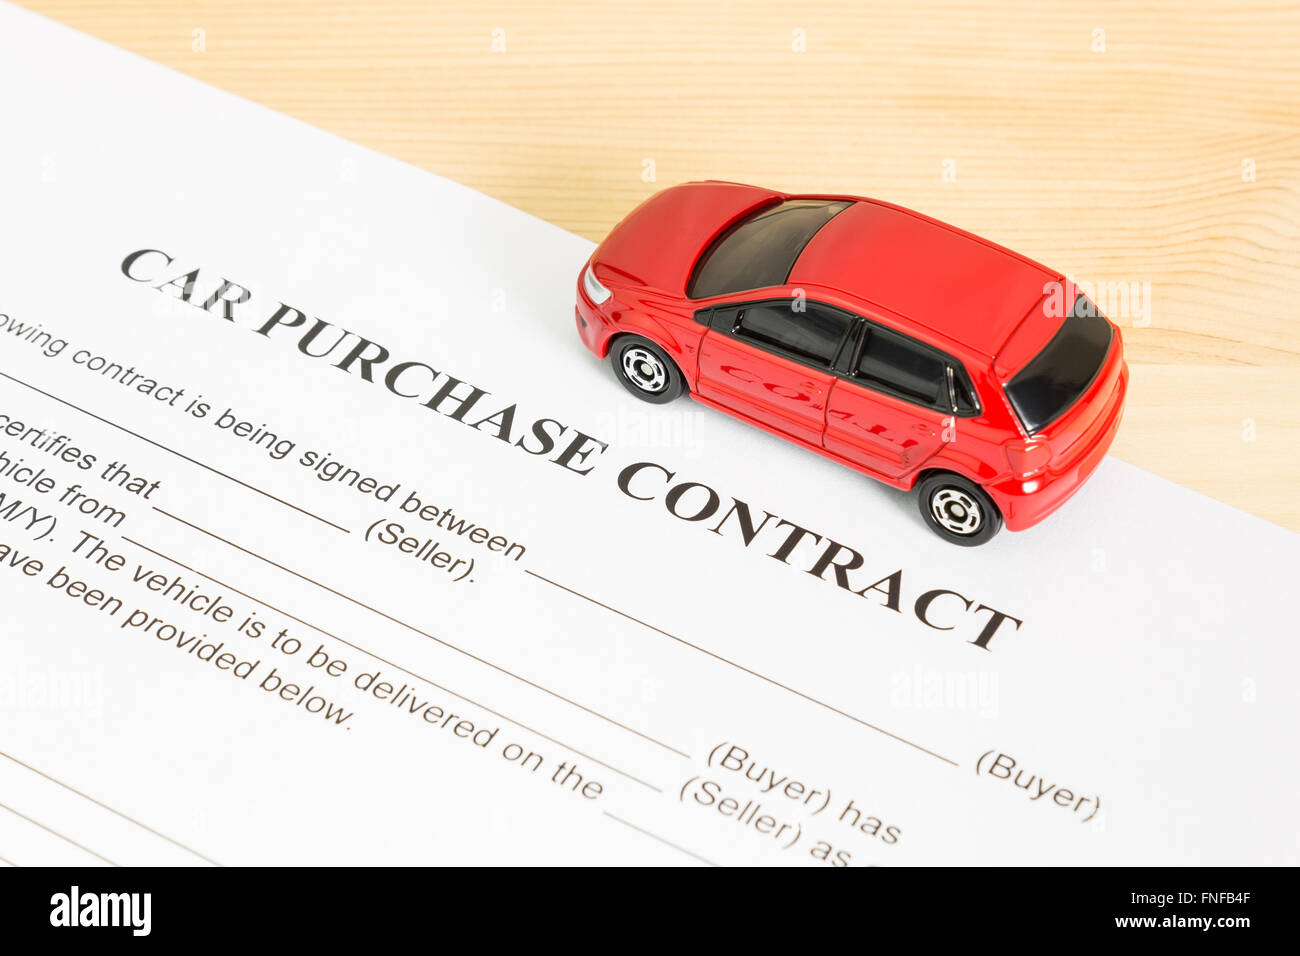 car purchase contract with red car on right view auto purchase